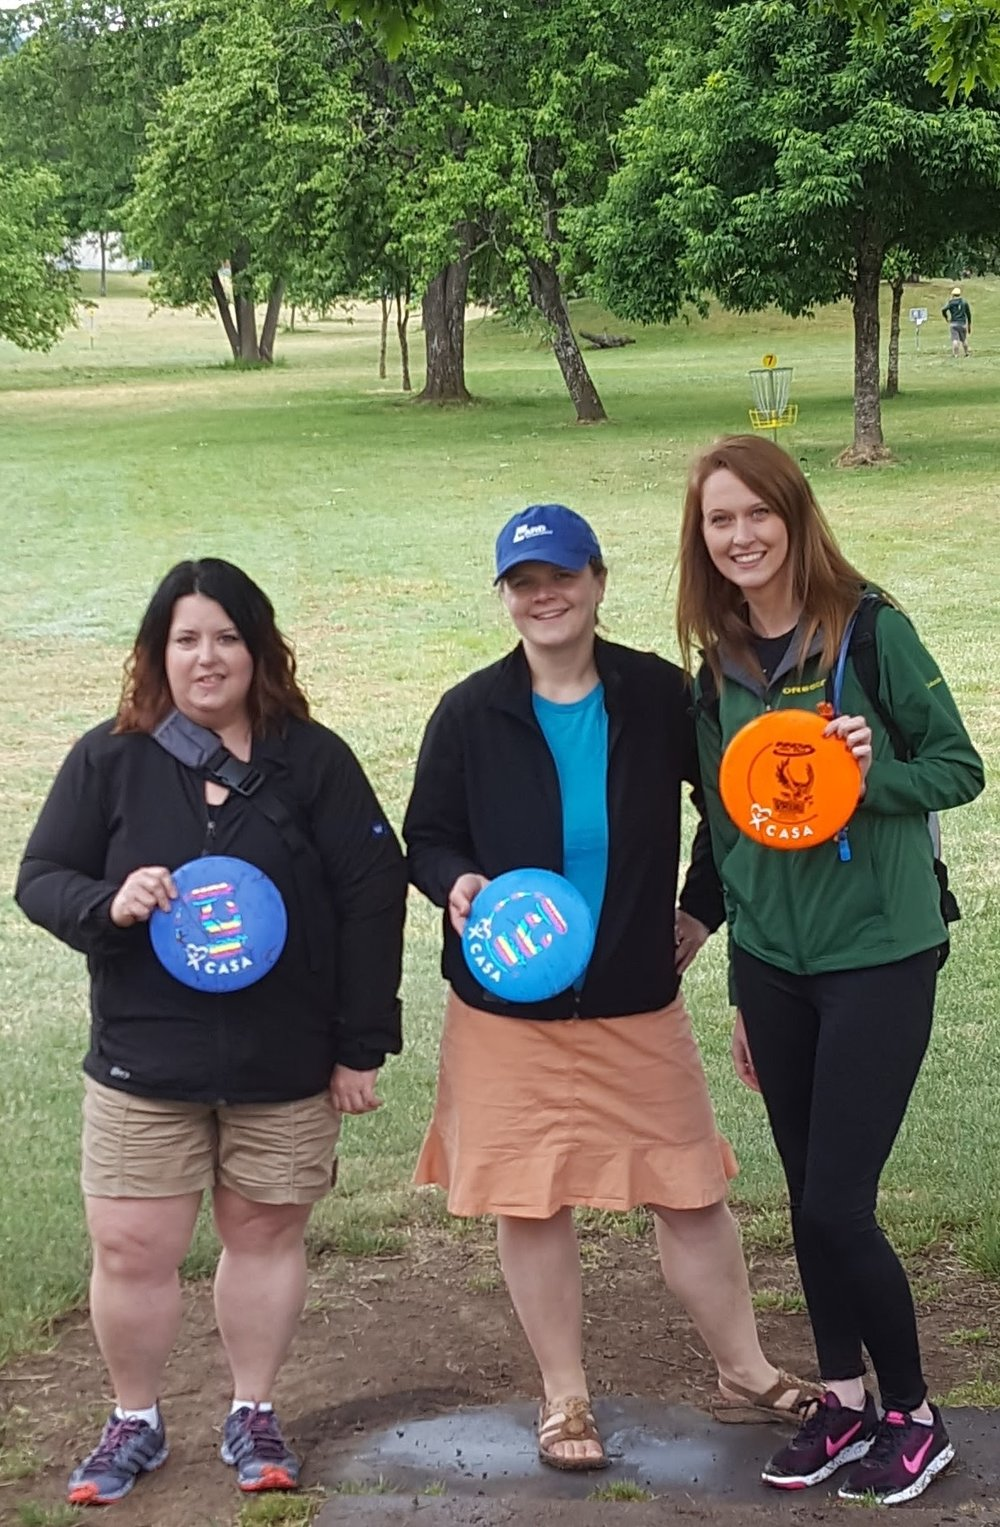 Disc Golf with Casa - Ward Insurance was proud to sponsor the 2017 Disc Golf Tournament put on by CASA. Over 90 participants played 9 or 18 holes at the Westmoreland course in Eugene. Disc Golfers  competed at two holes for closest to the pin and hole in one winner. As always in Eugene, rain tried to scare off participants but cleared up right as the horn blew to signal the shotgun start of the tournament.